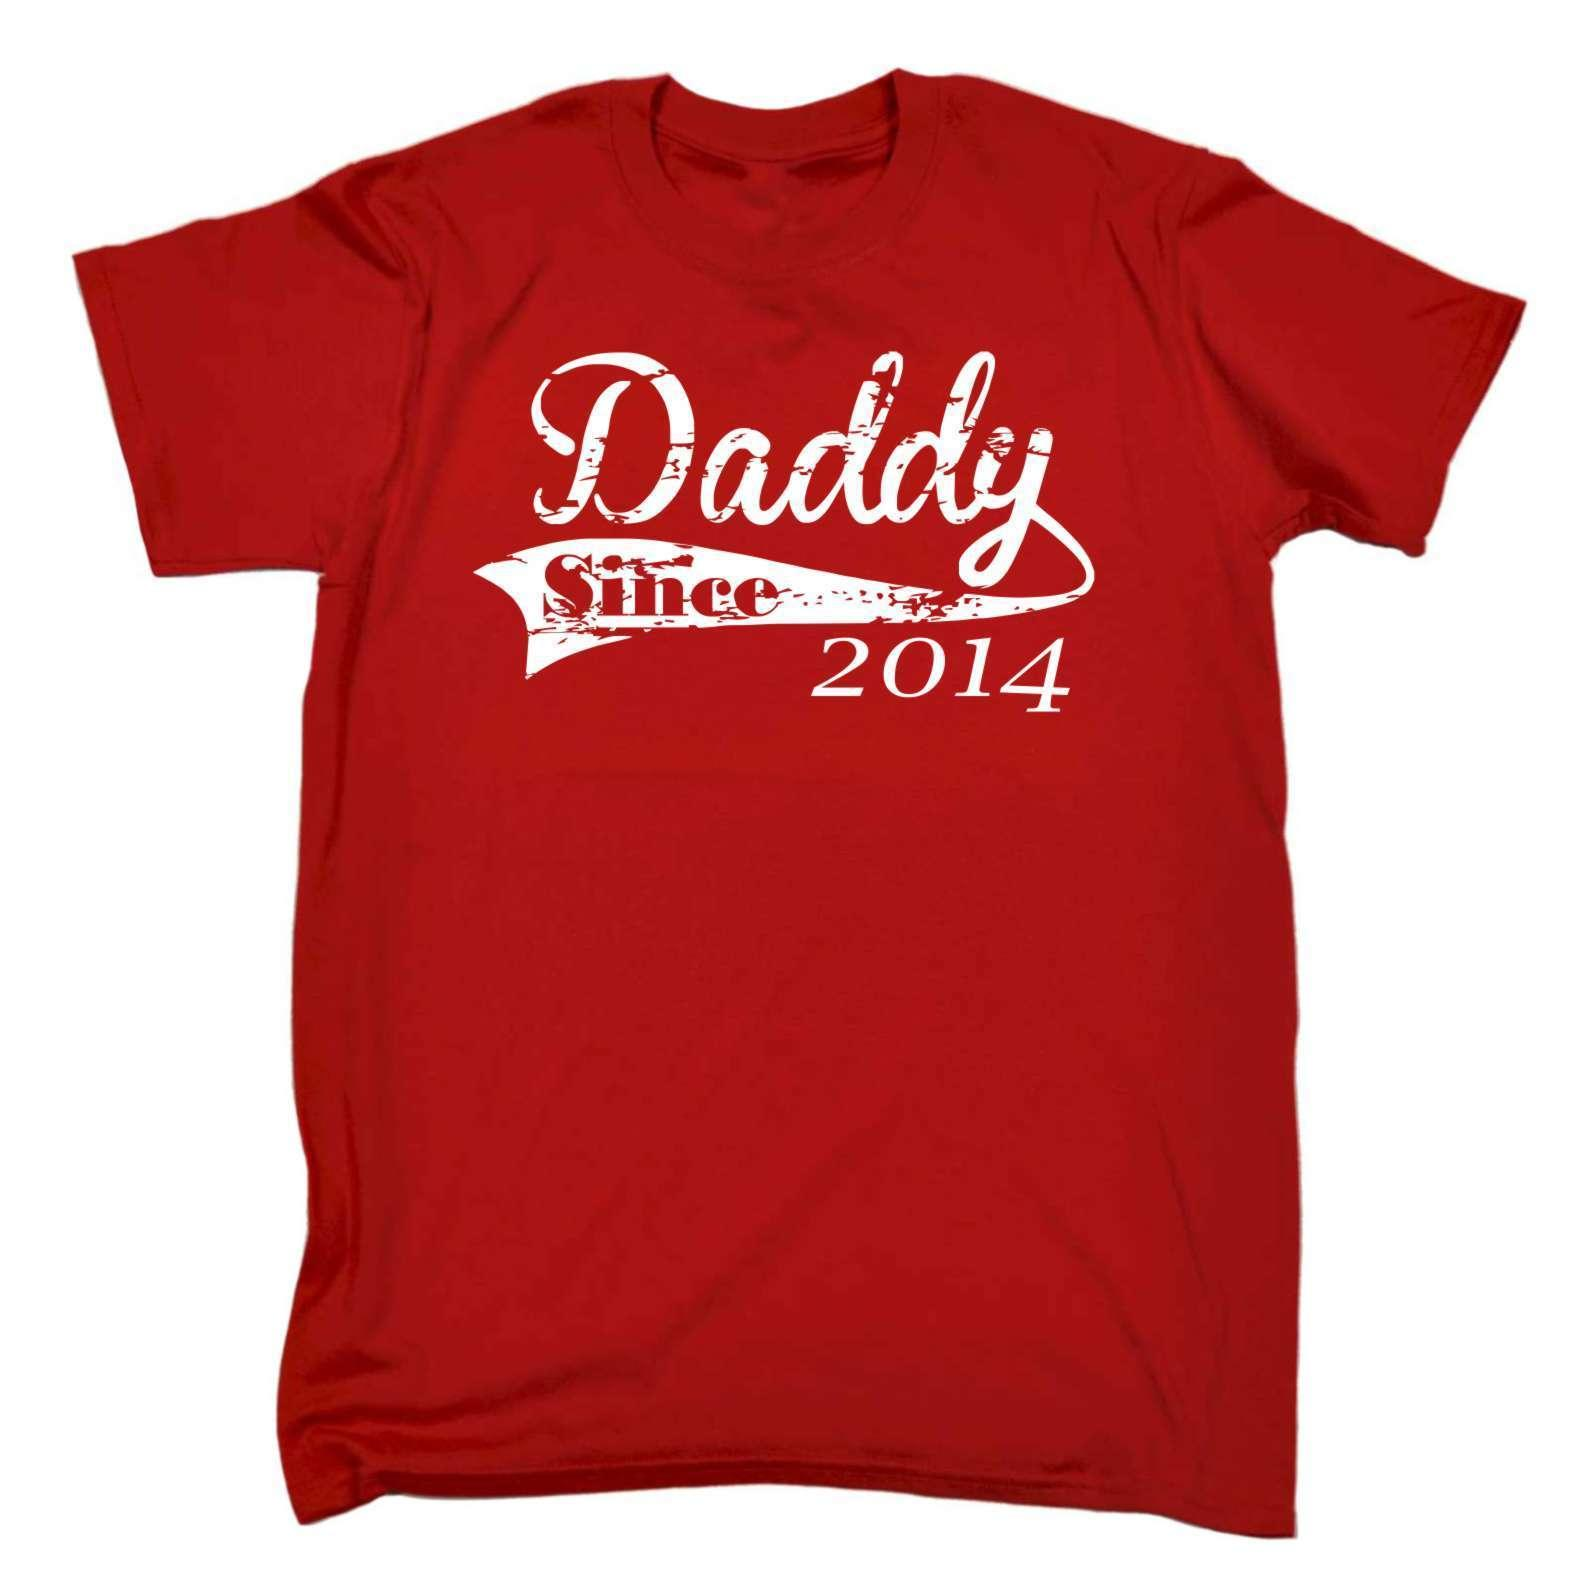 5430bac7e237 Men S Red Medium Daddy Since 2014 Cheap T Shirt Family Nice Gift The Who T  Shirt T Shirts Designs From Shirtainly